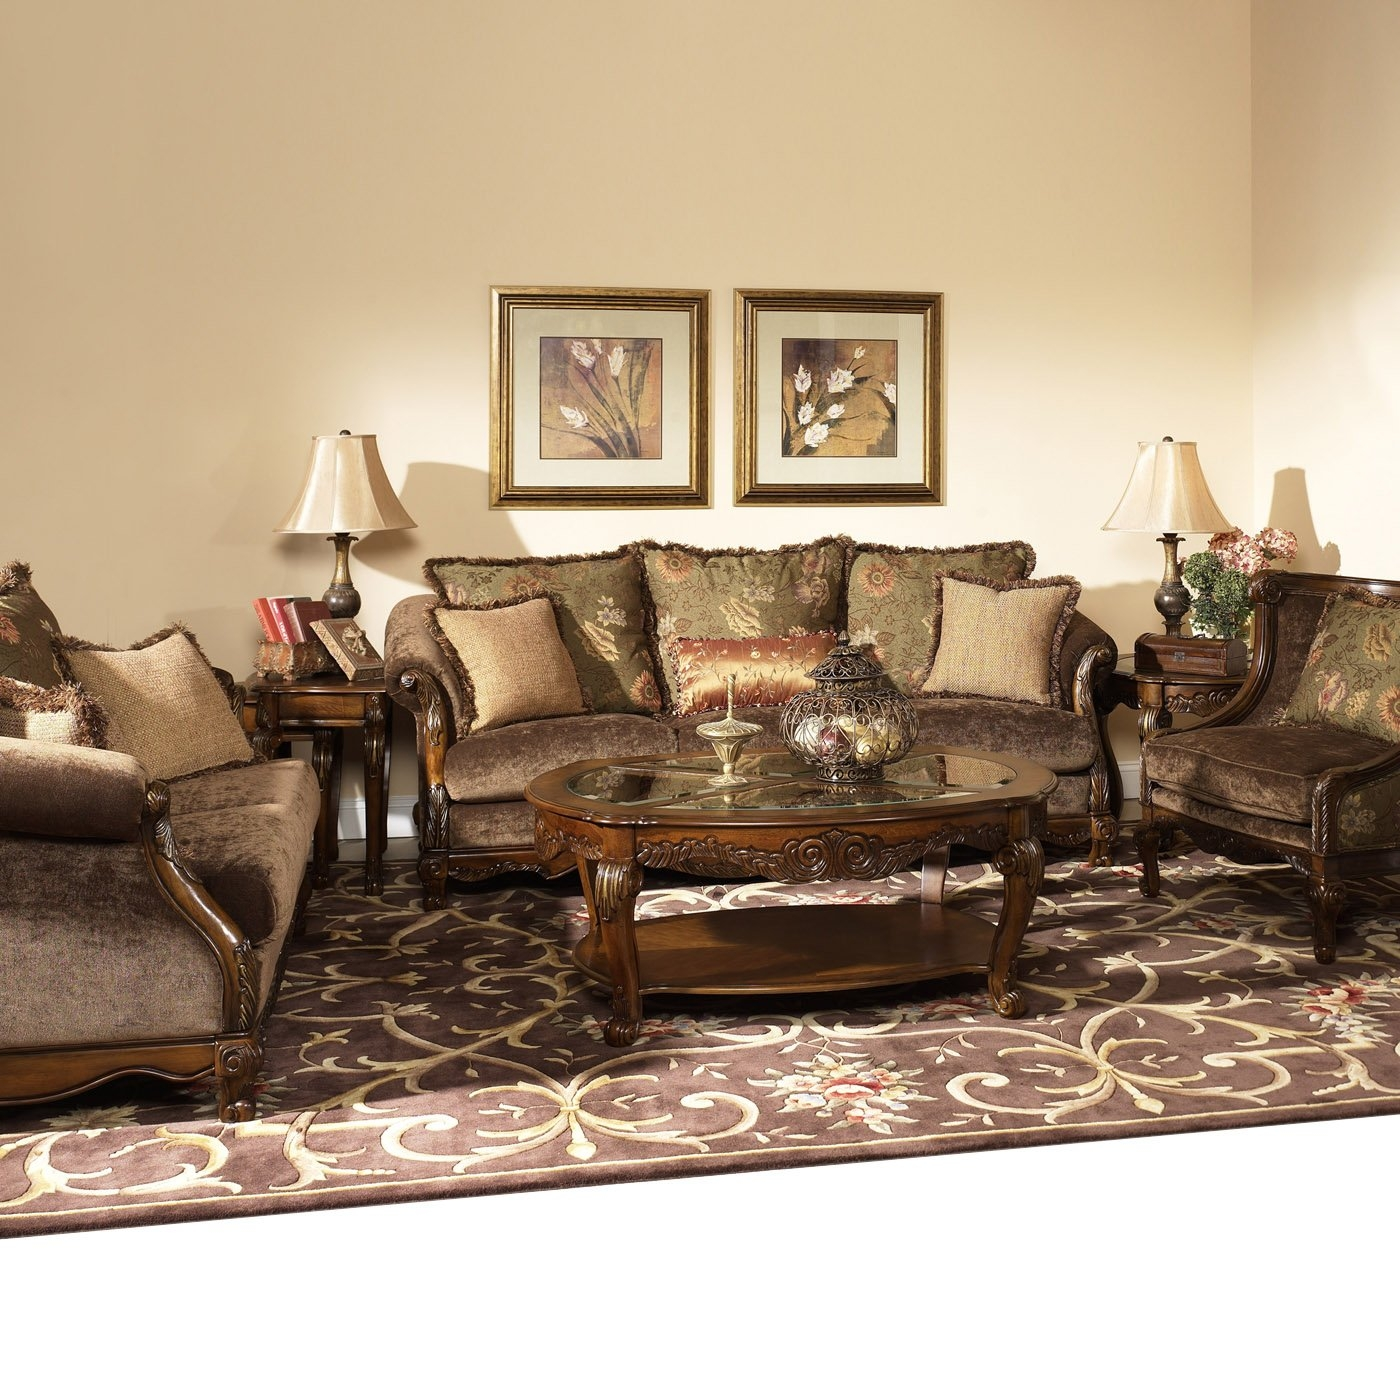 Luxury Elegant Sofa Set 25 For Your Office Sofa Ideas With Elegant With Regard To Elegant Sofas And Chairs (Image 9 of 15)